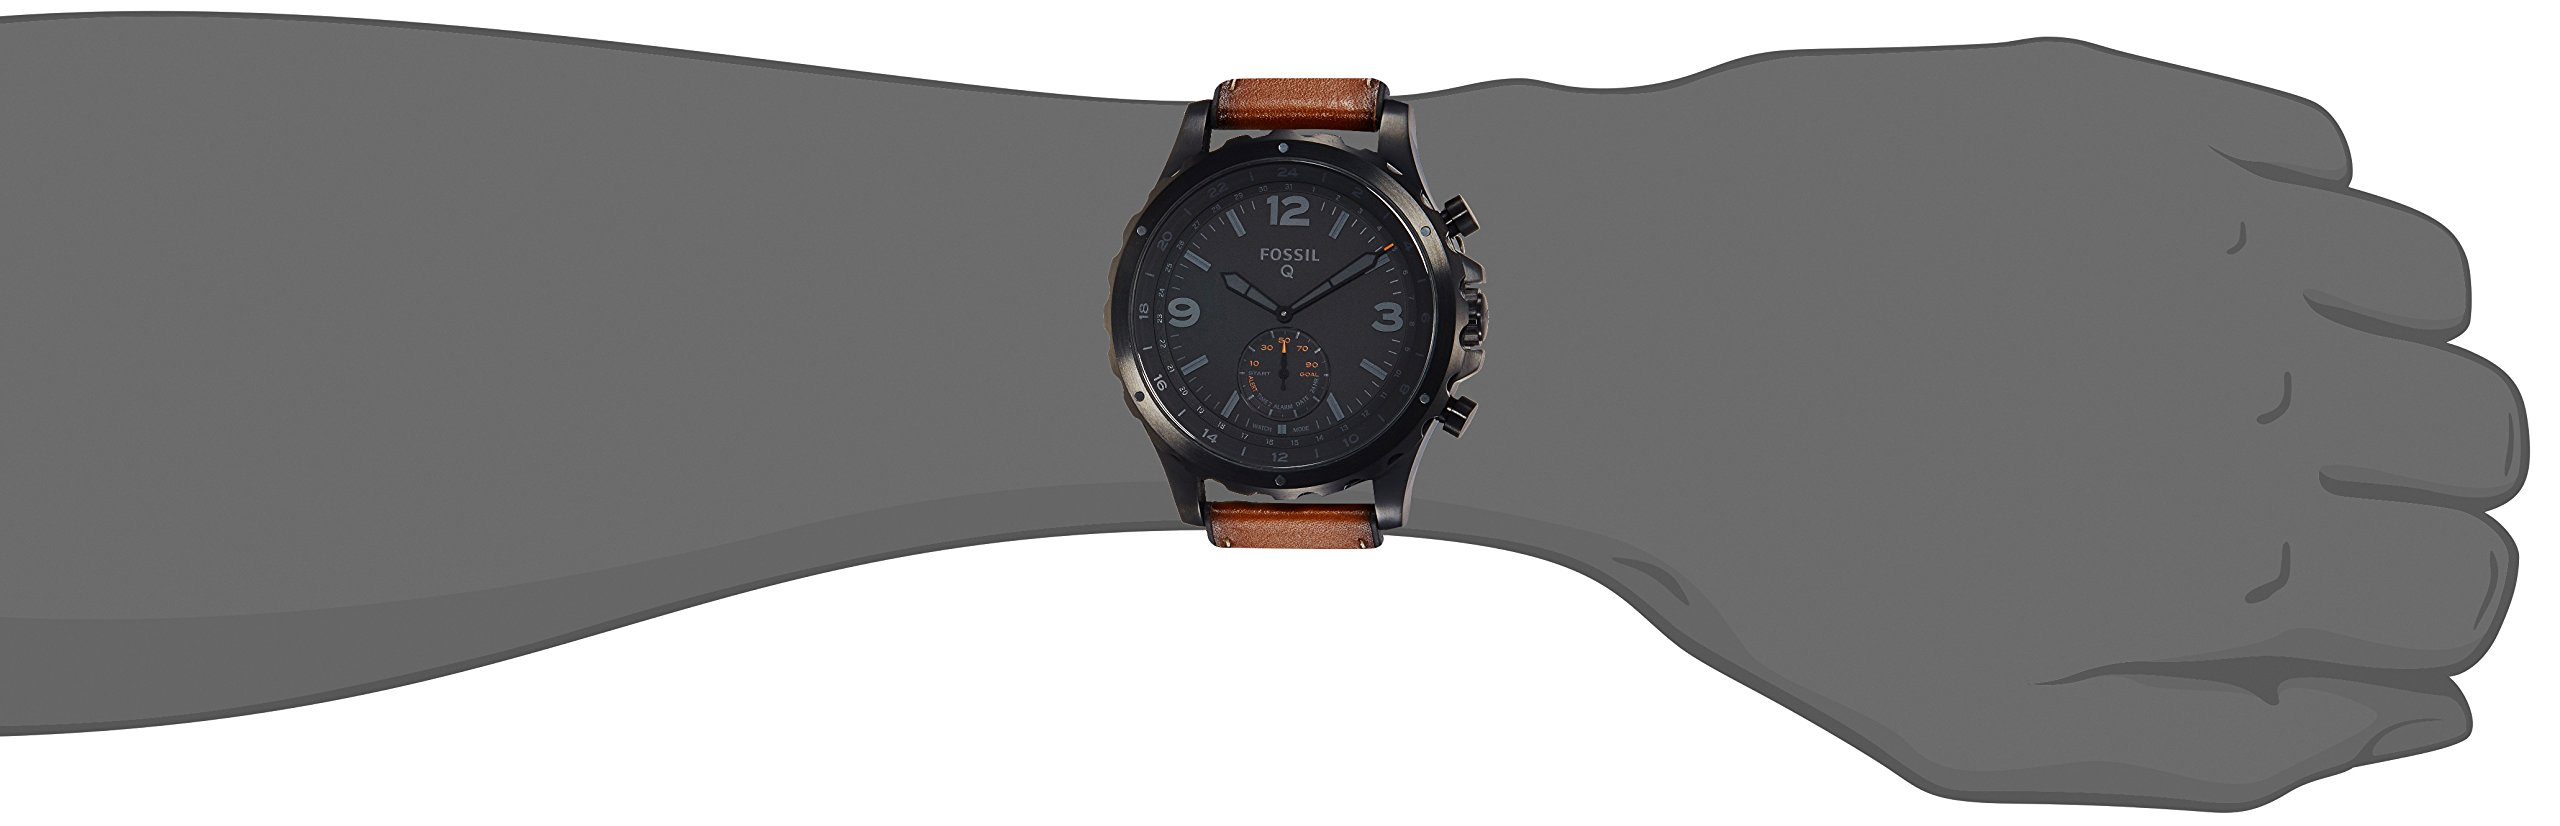 Fossil Hybrid Smartwatch - Q Nate Dark Brown Leather by Fossil (Image #3)